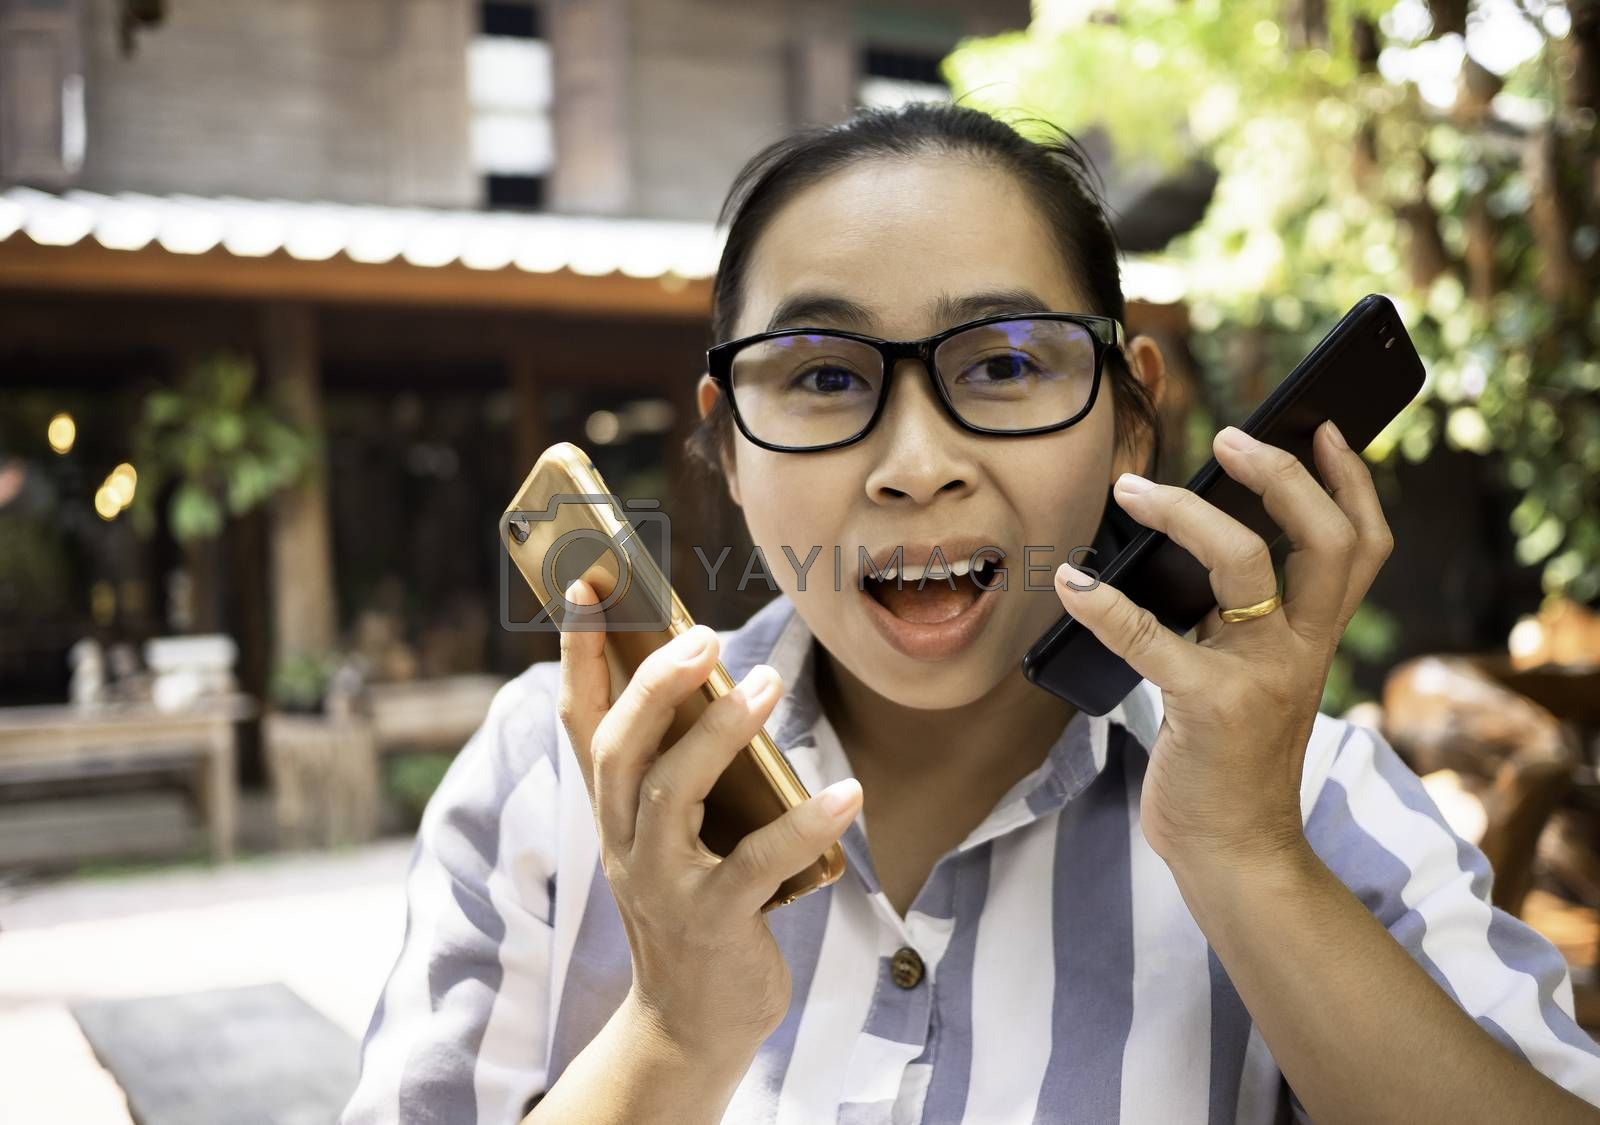 Business Asian young woman holding smartphone do busy with work while talking on the phone simultaneously at coffee cafe. by TEERASAK